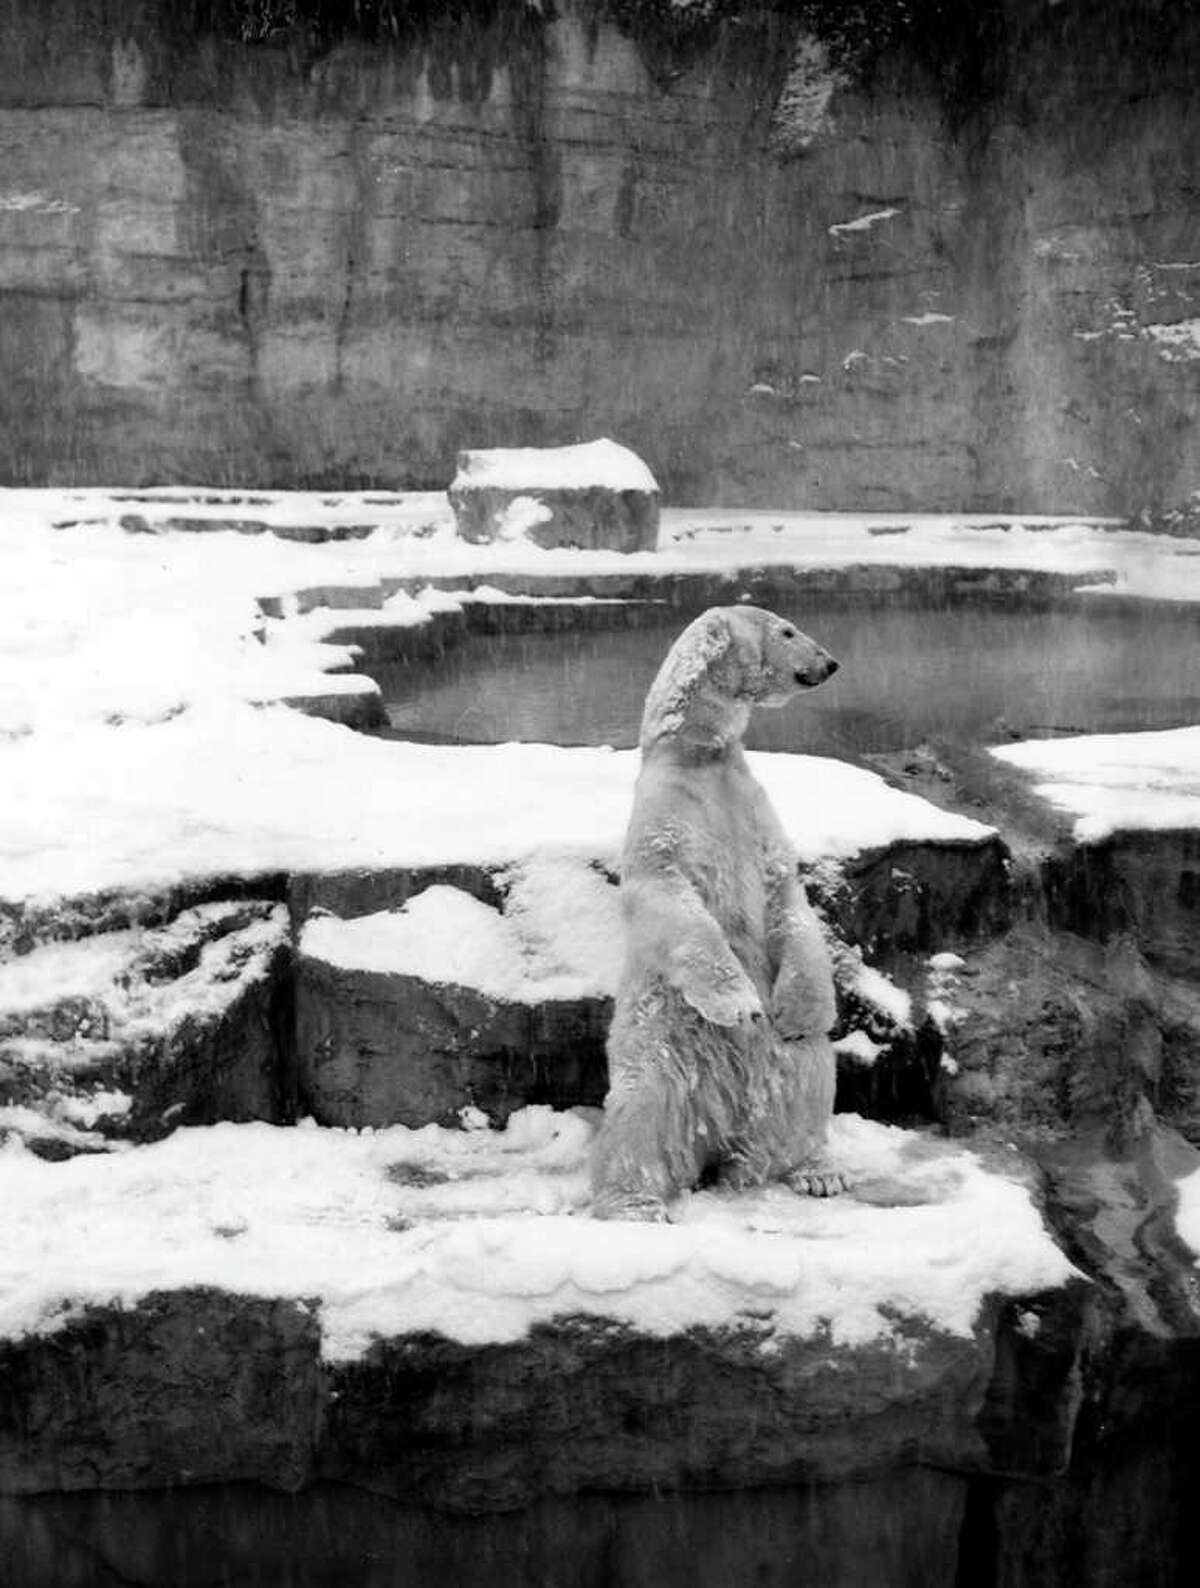 This Polar bear at the San Antonio Zoo is enjoying the record snow in San Antonio, Texas. Published in the San Antonio Light on January 30, 1949.